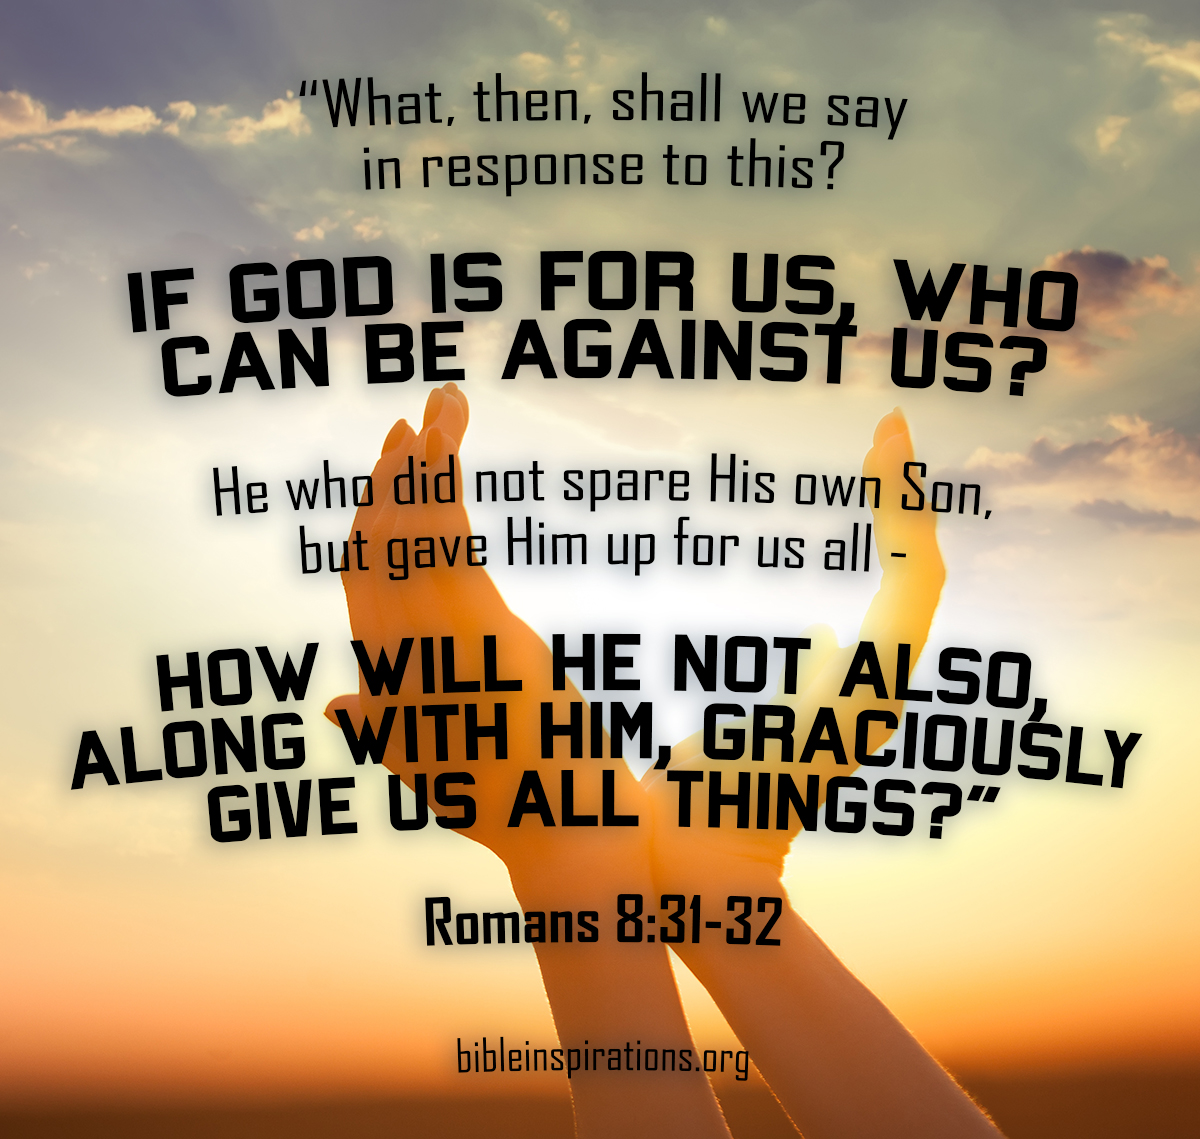 What, then, shall we say in response to this? If God is for us, who can be against us? He who did not spare his own Son, but gave him up for us all — how will he not also, along with him, graciously give us all things? — Romans 8:31-32